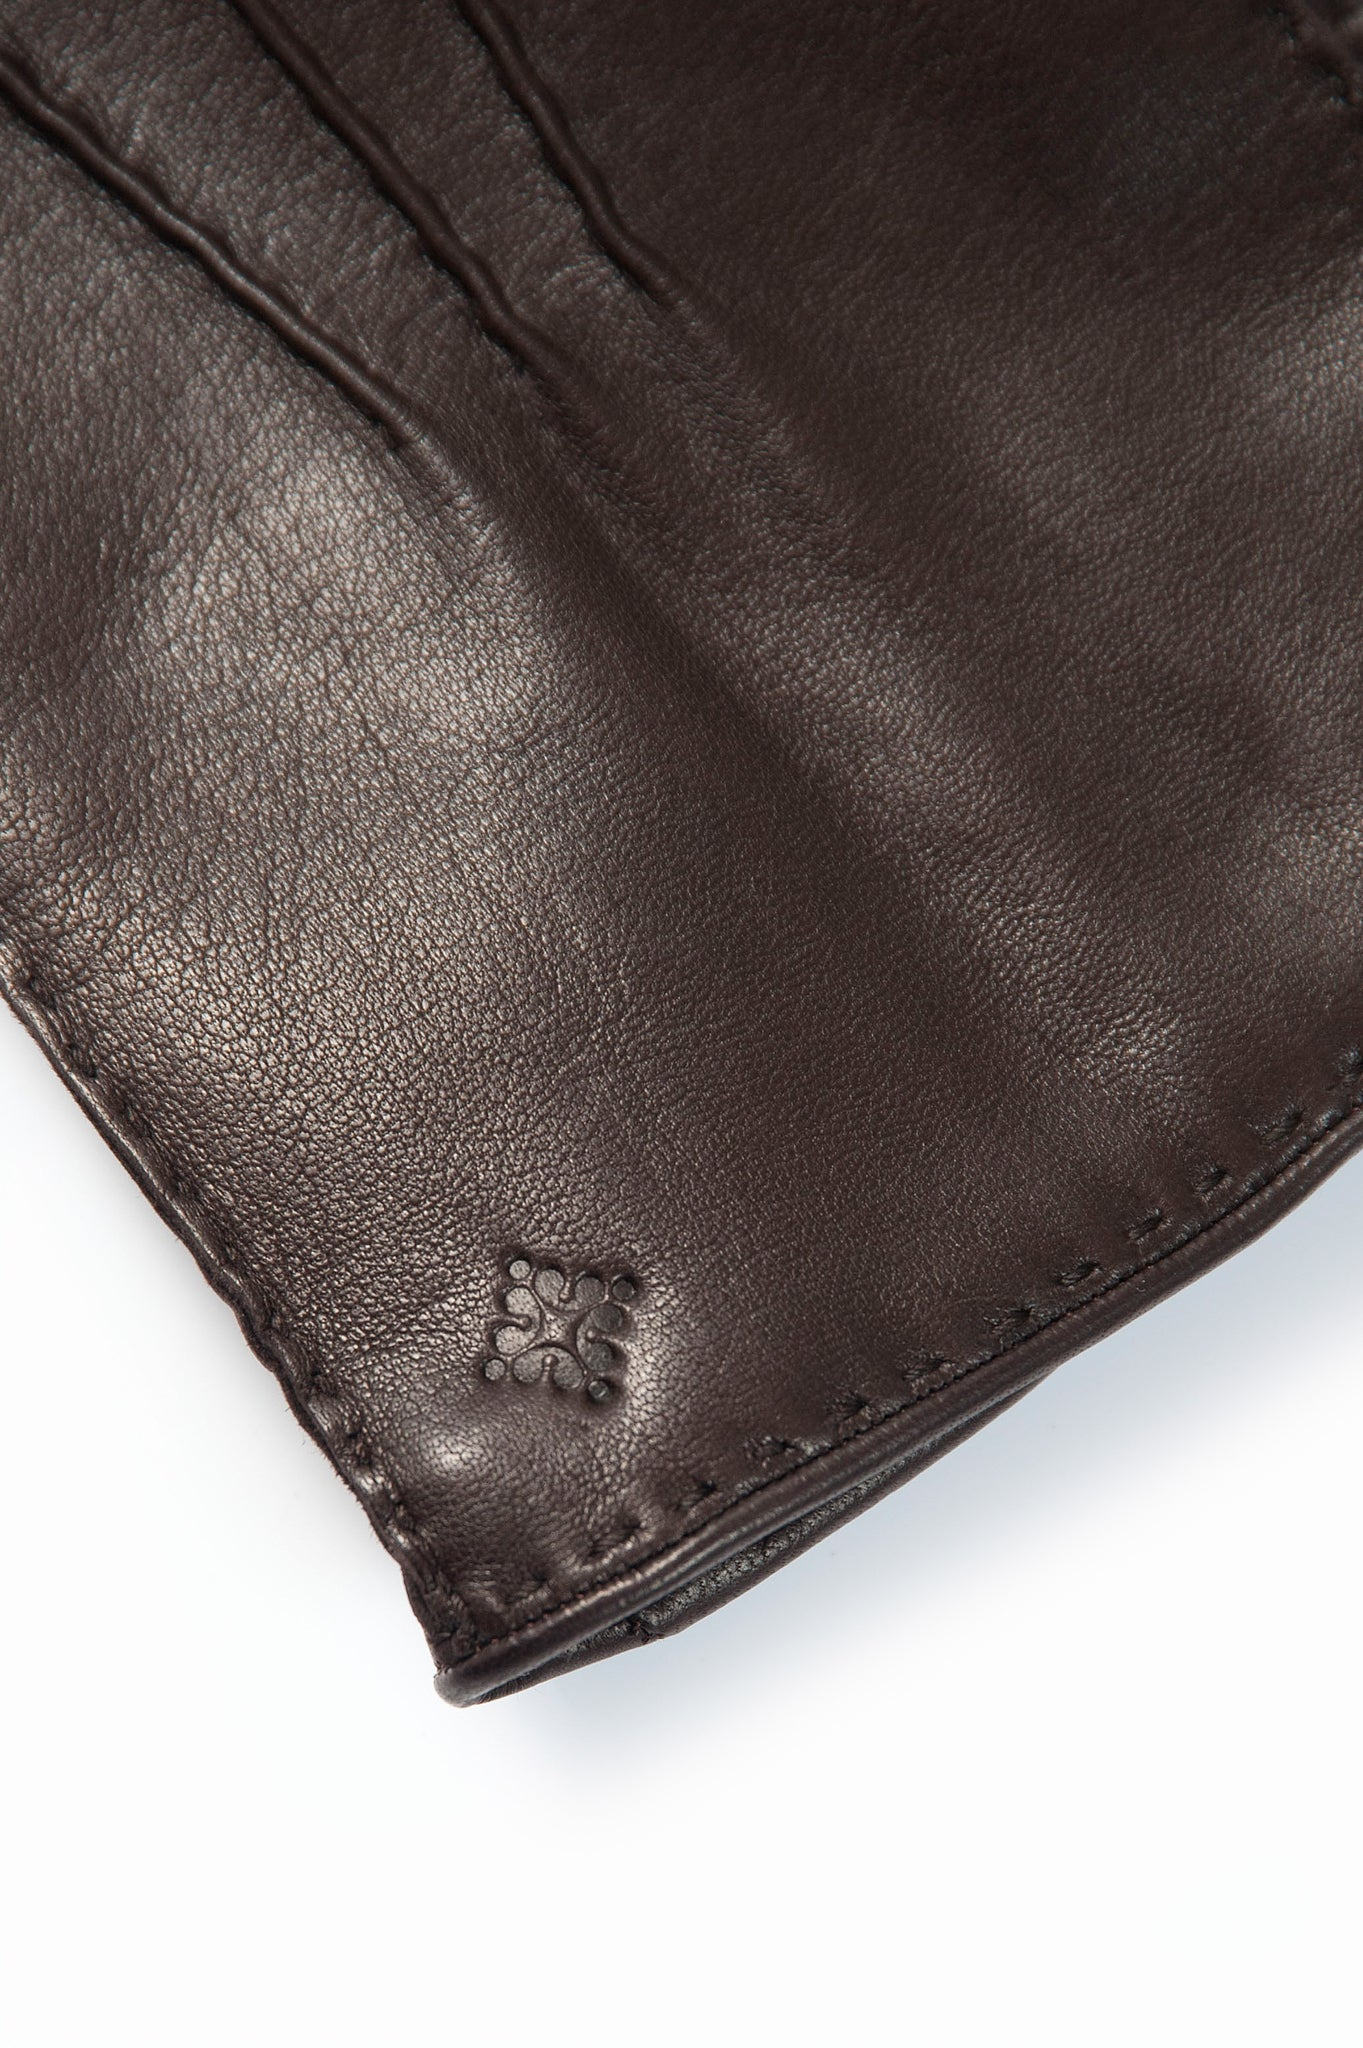 Paul 100% Soft Nappa Leather and Interior in Cashmere Gloves (dark brown)